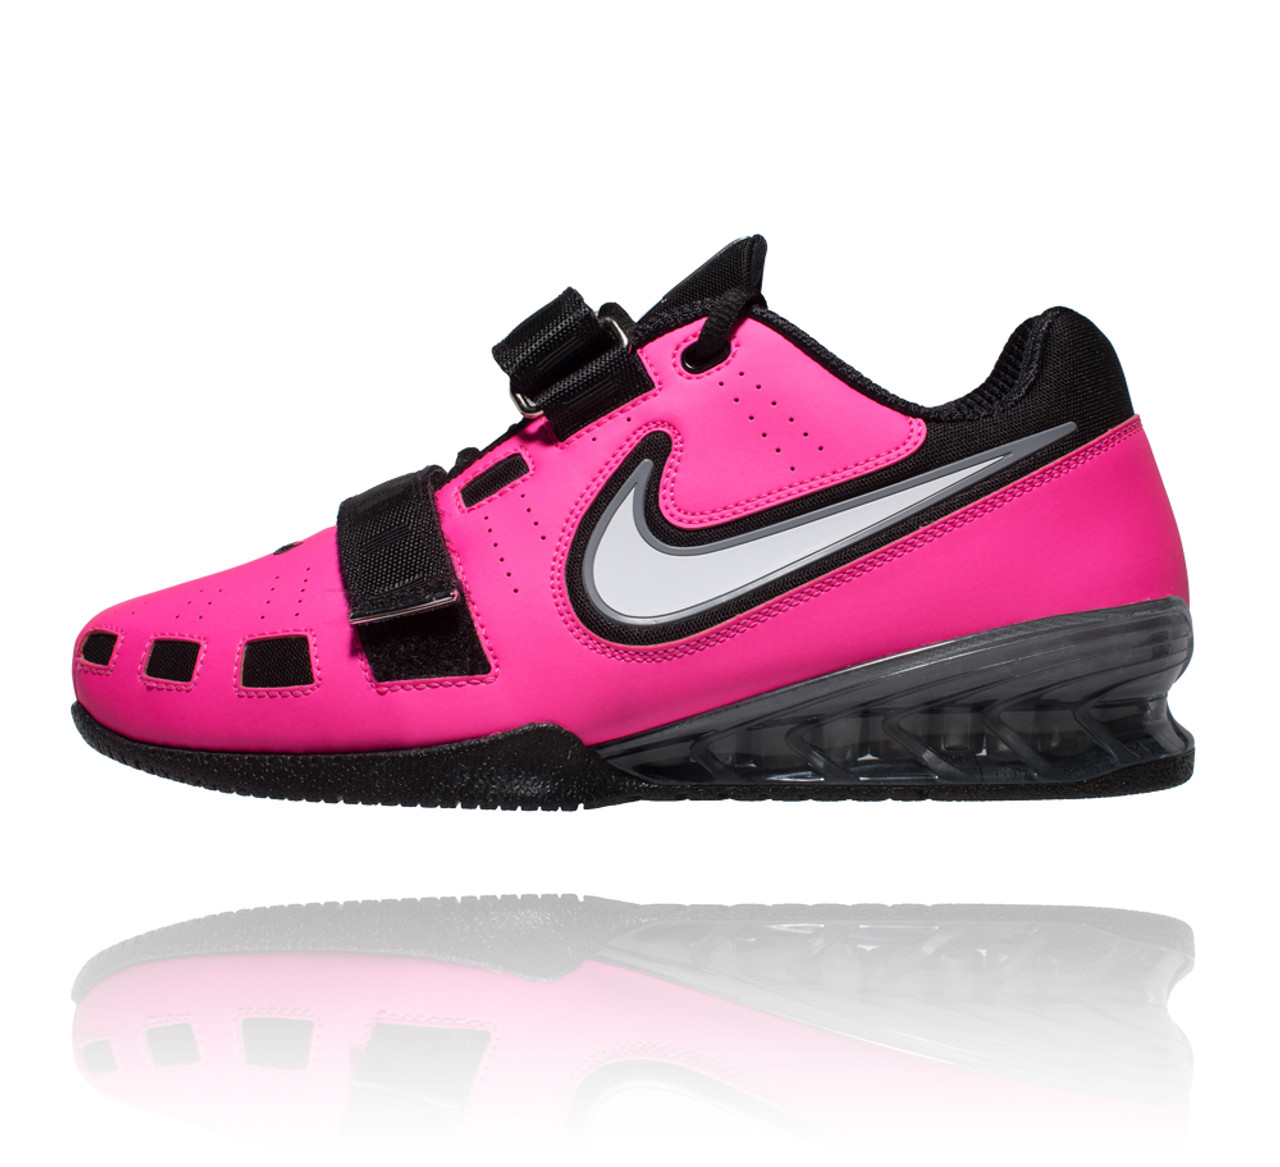 a0f82dc0847ce Nike Romaleos 2 Weightlifting Shoes - Pink Blast White Blk Cool Grey